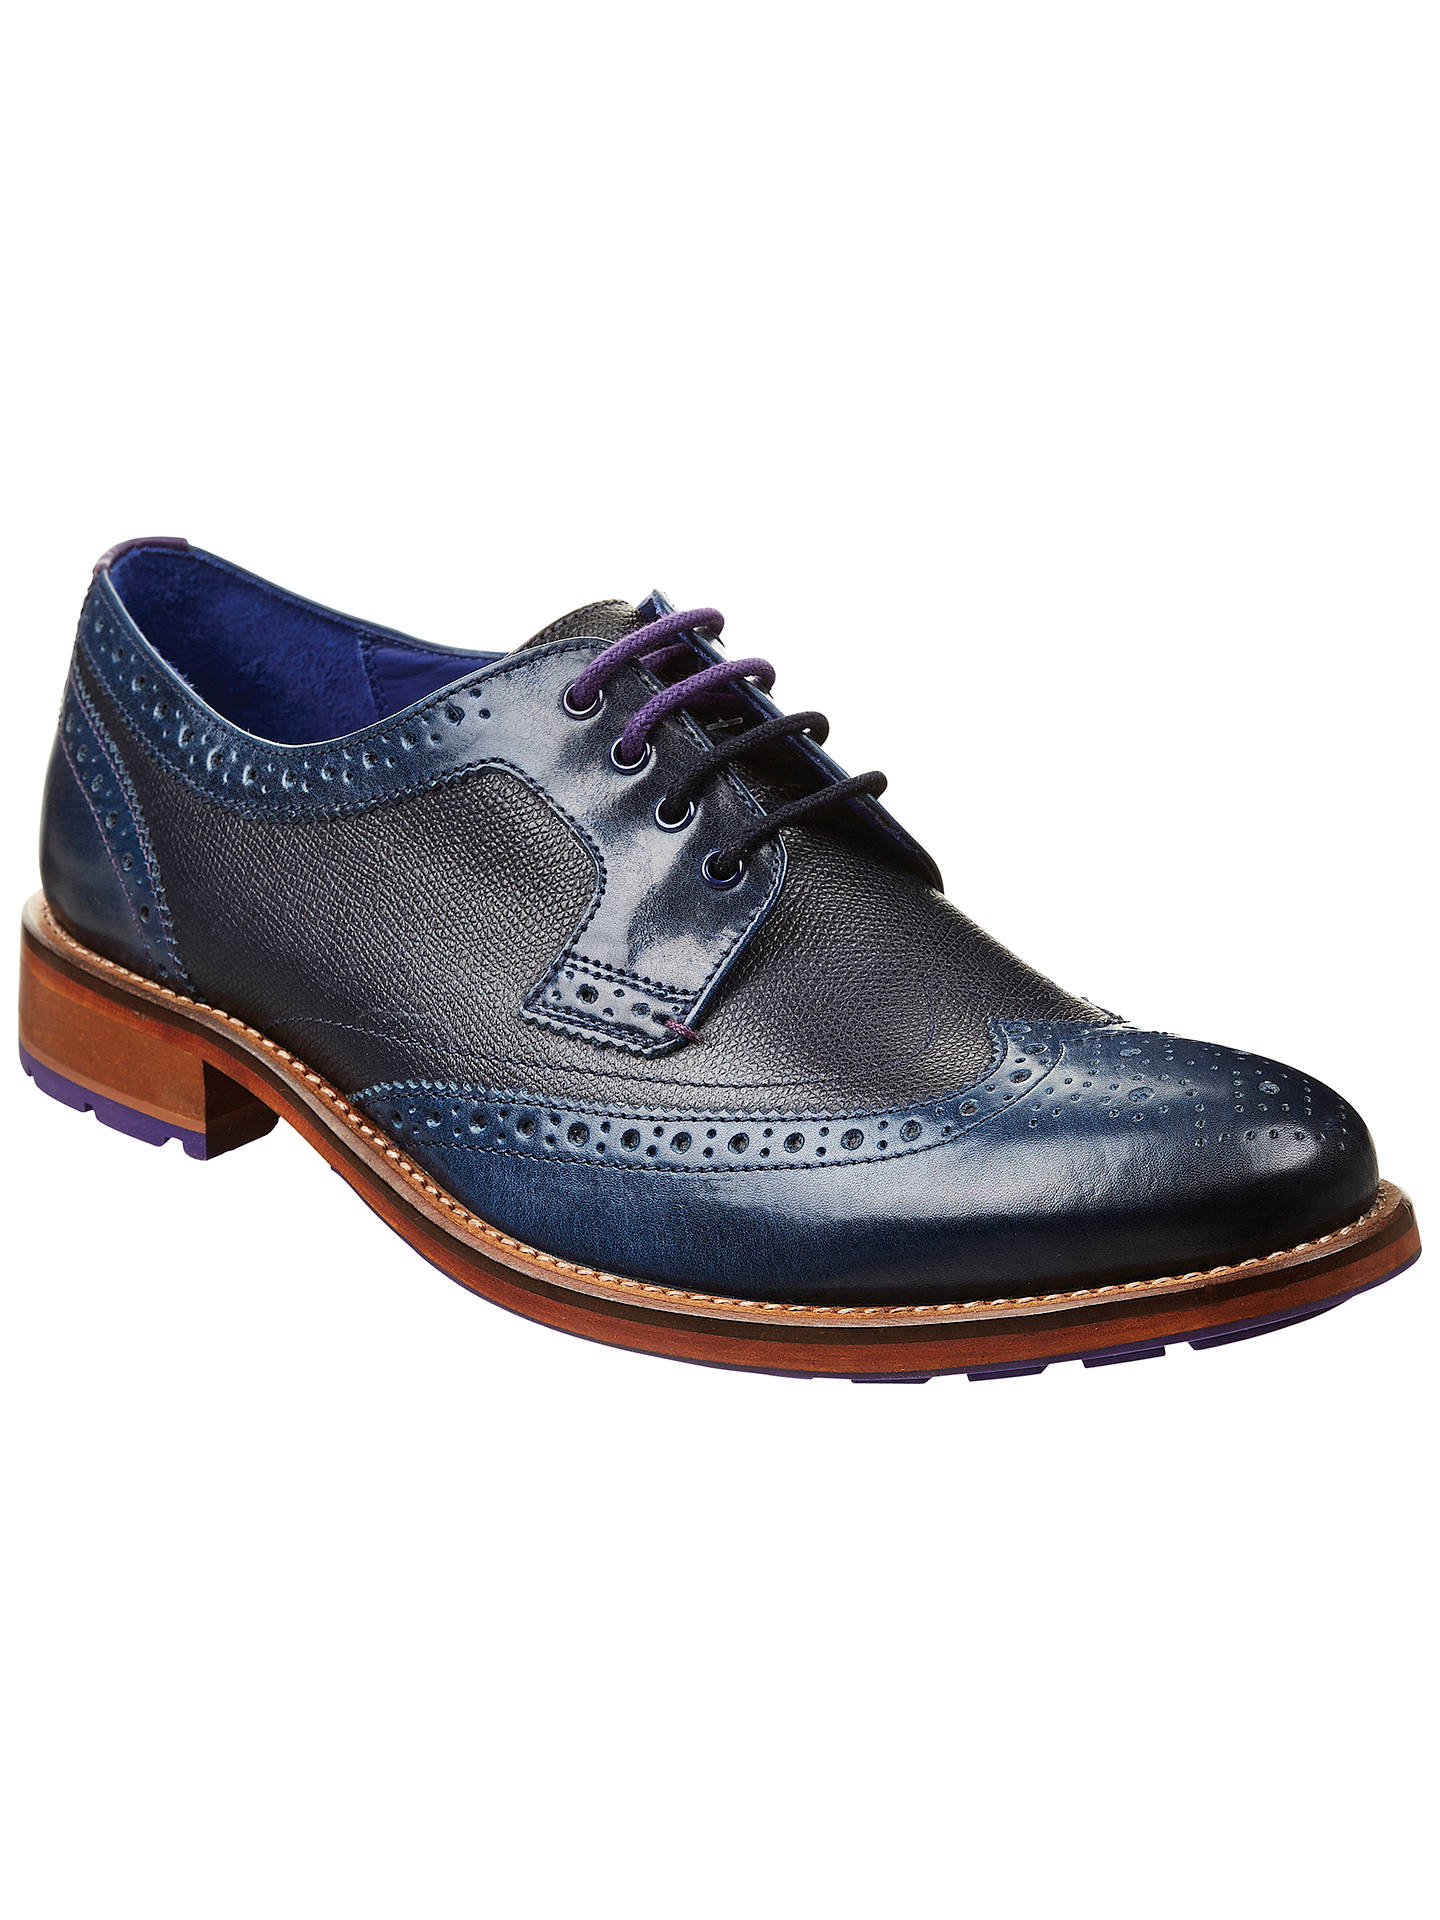 12311ea65fac02 Ted Baker Cassius Leather Wingtip Derby Brogues at John Lewis   Partners